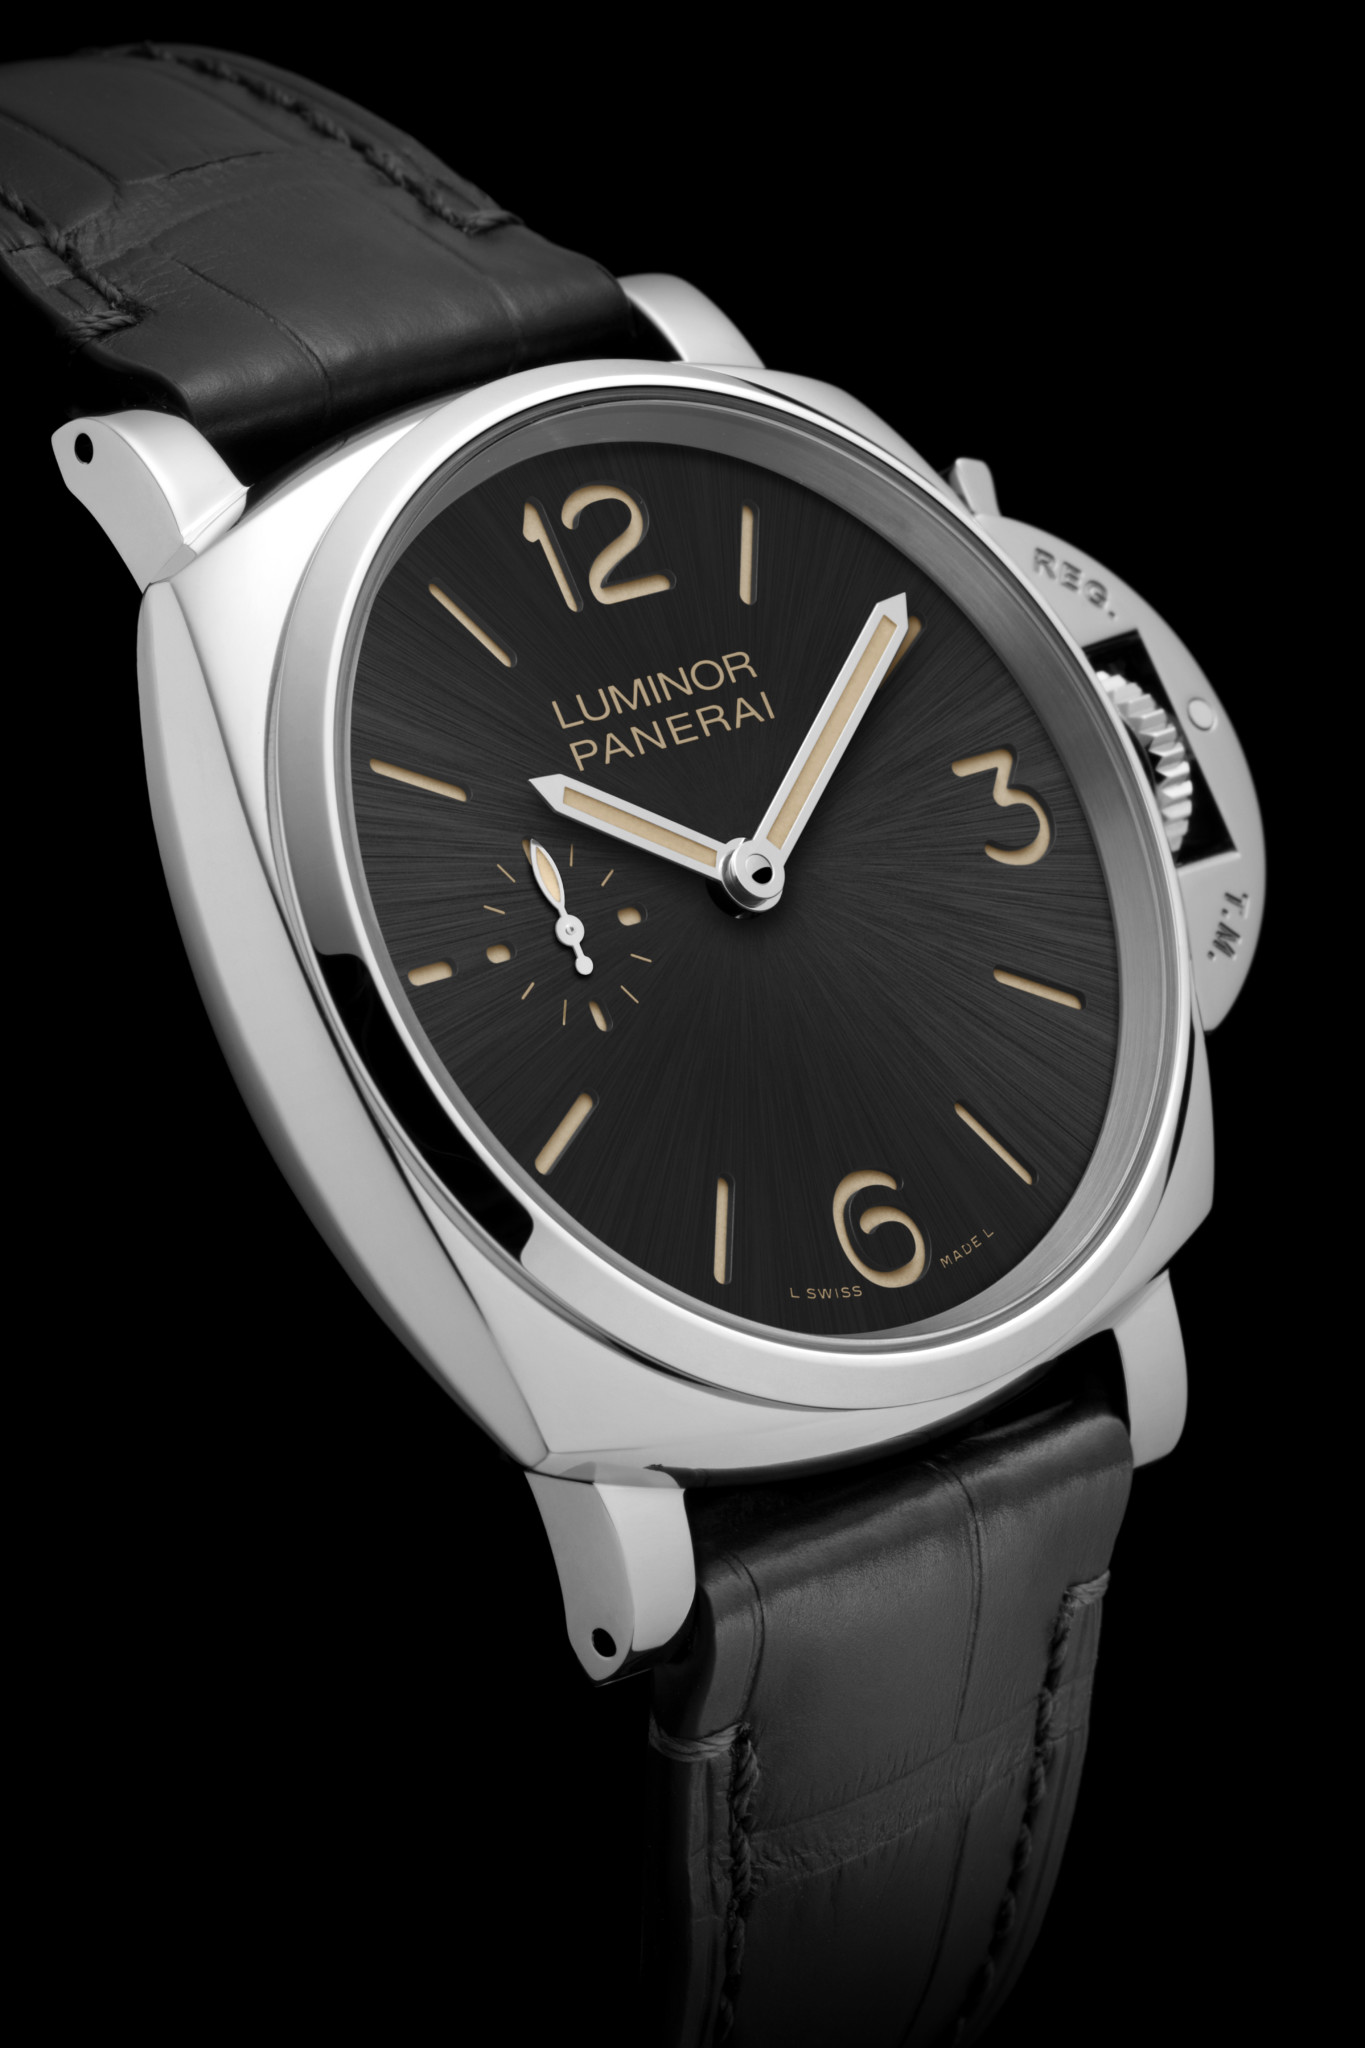 999303f1551 Panerai launches two new ultra-slim Luminor models - High Quality ...